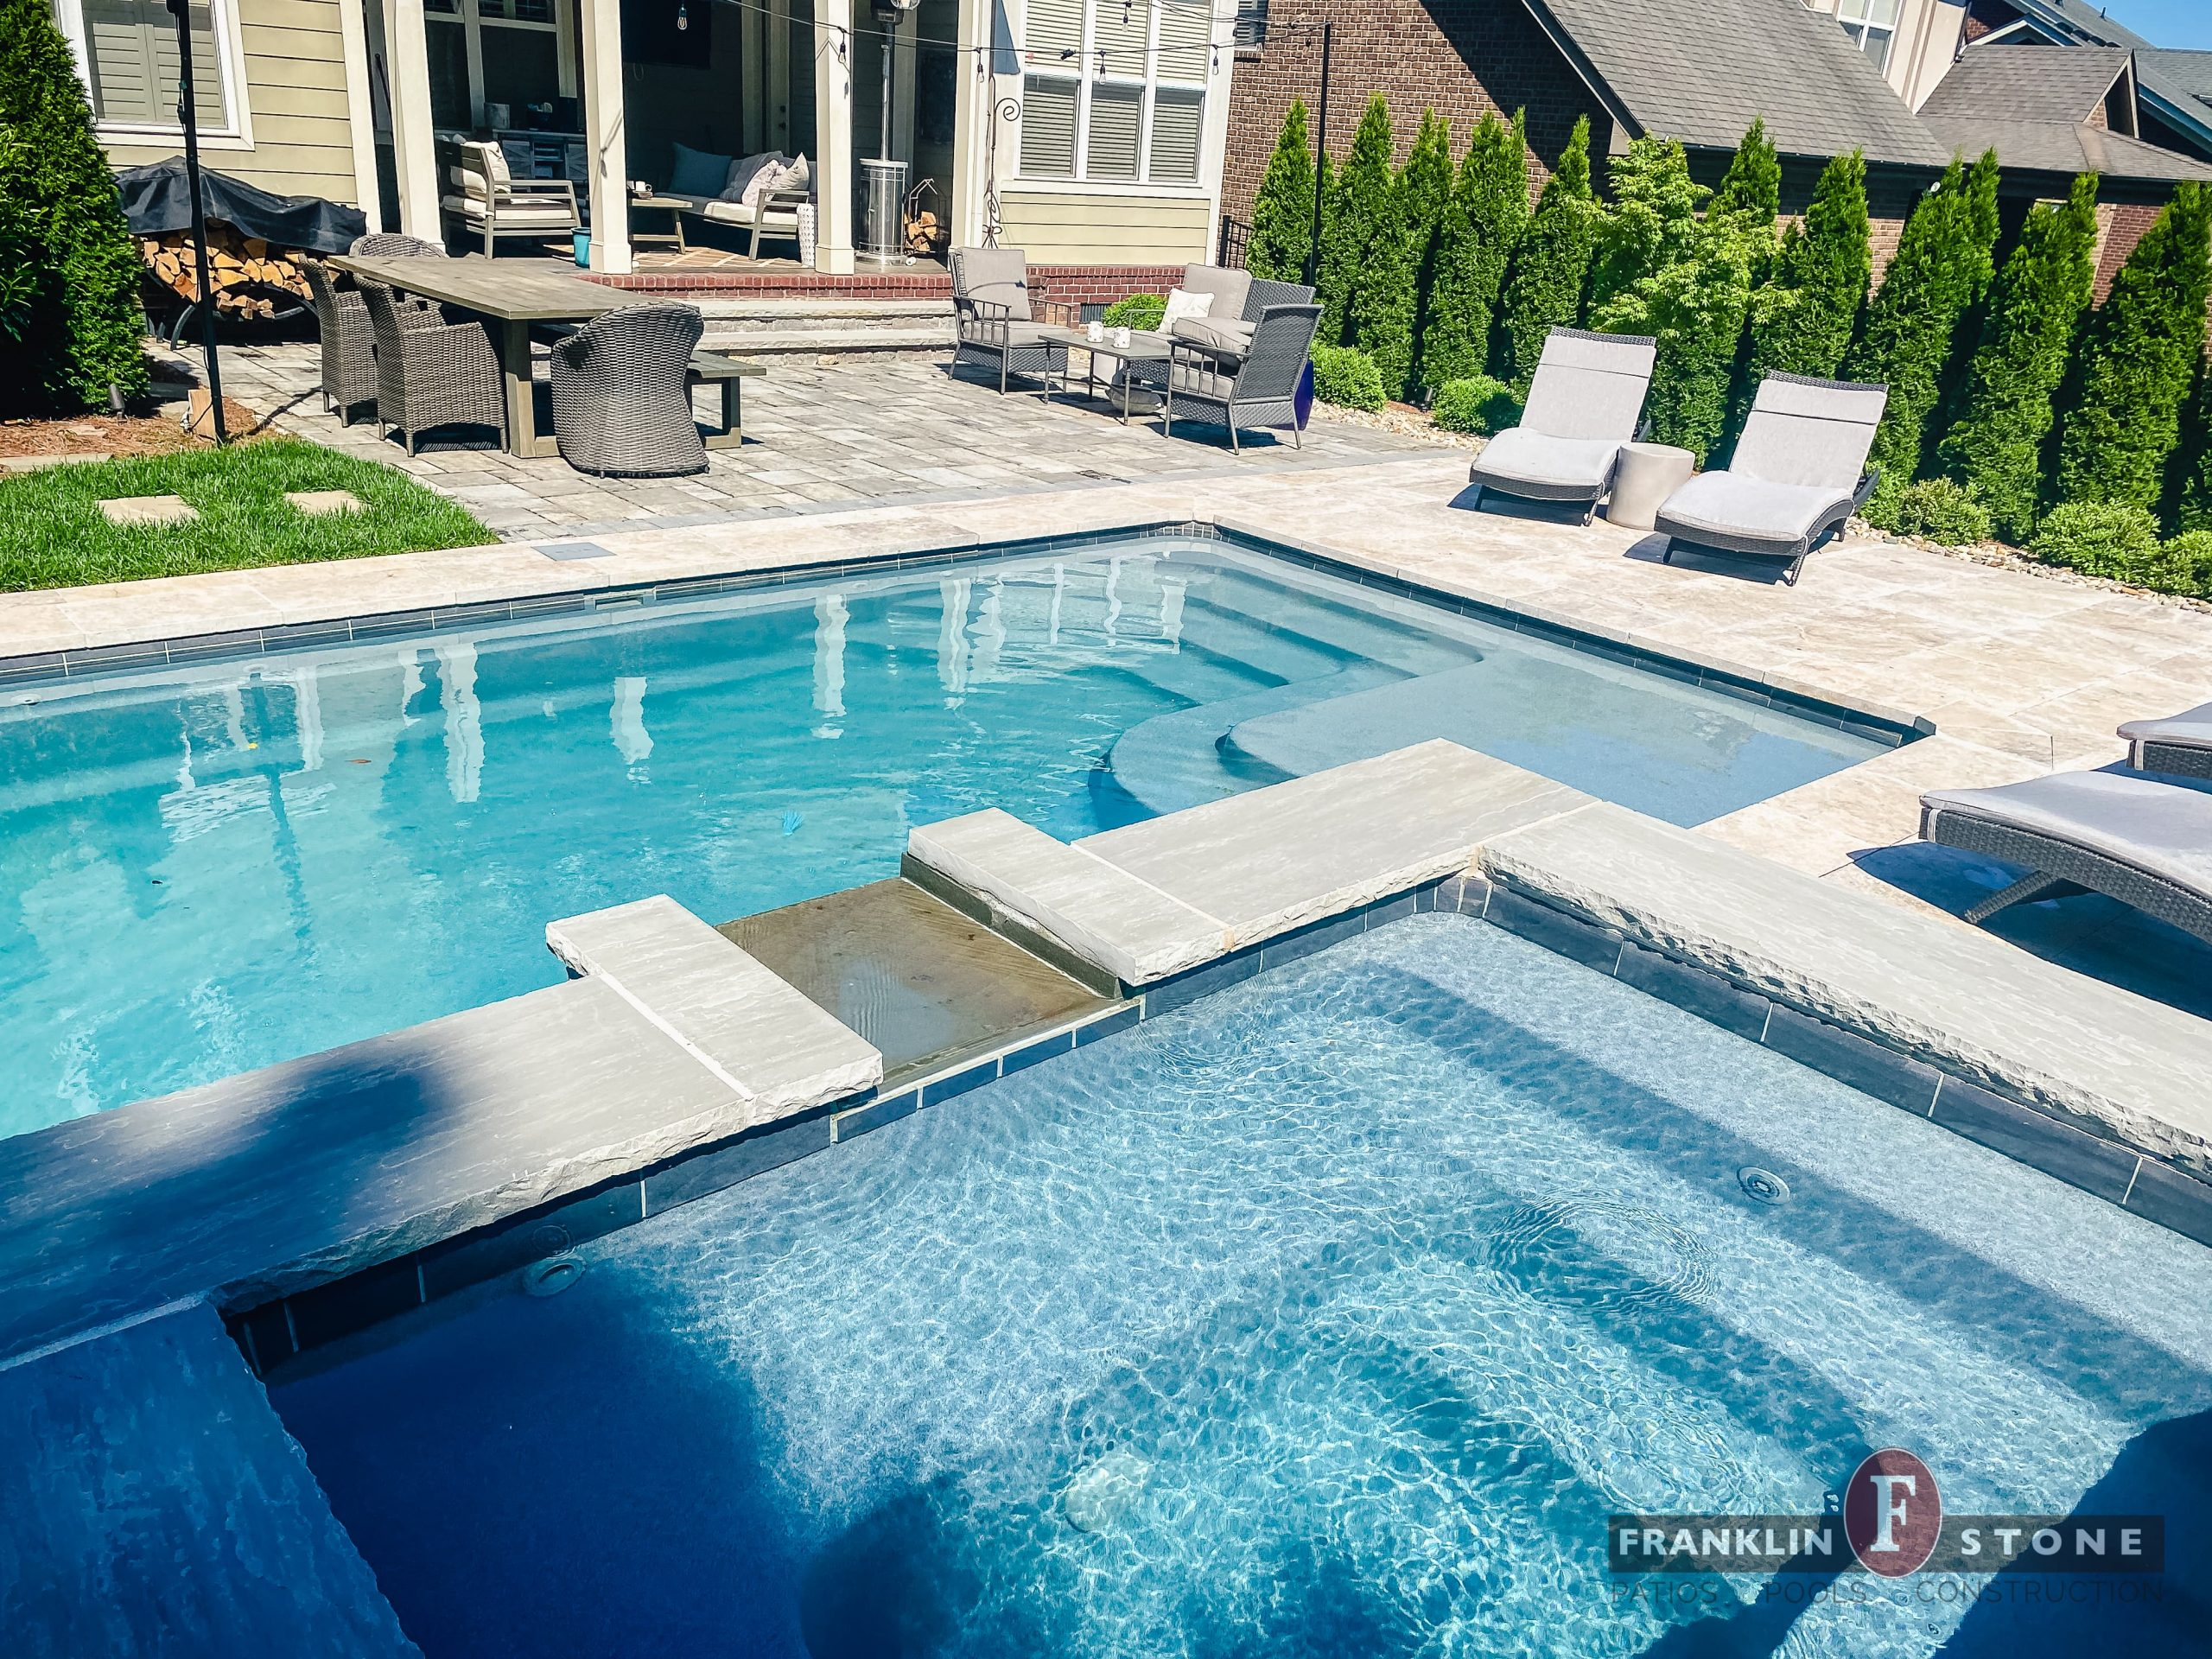 Franklin Stone pool, spa, and outdoor patio seating